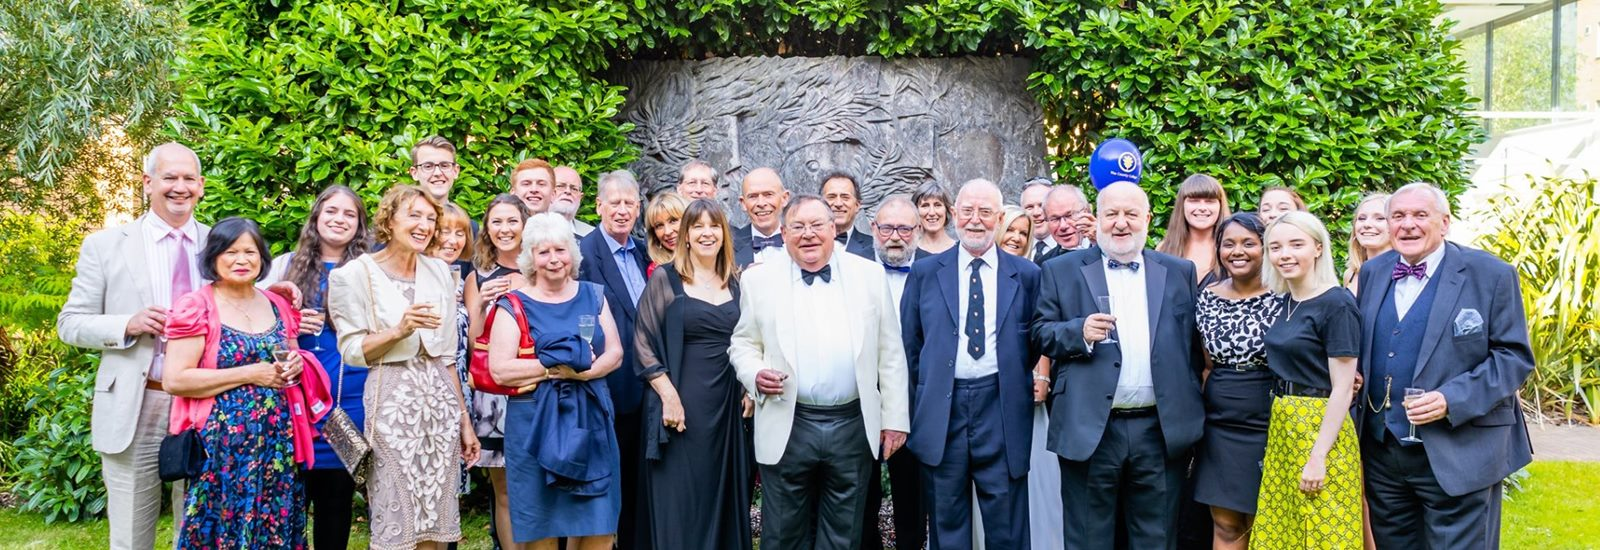 Alumni gathered outside at County College 50th anniversary